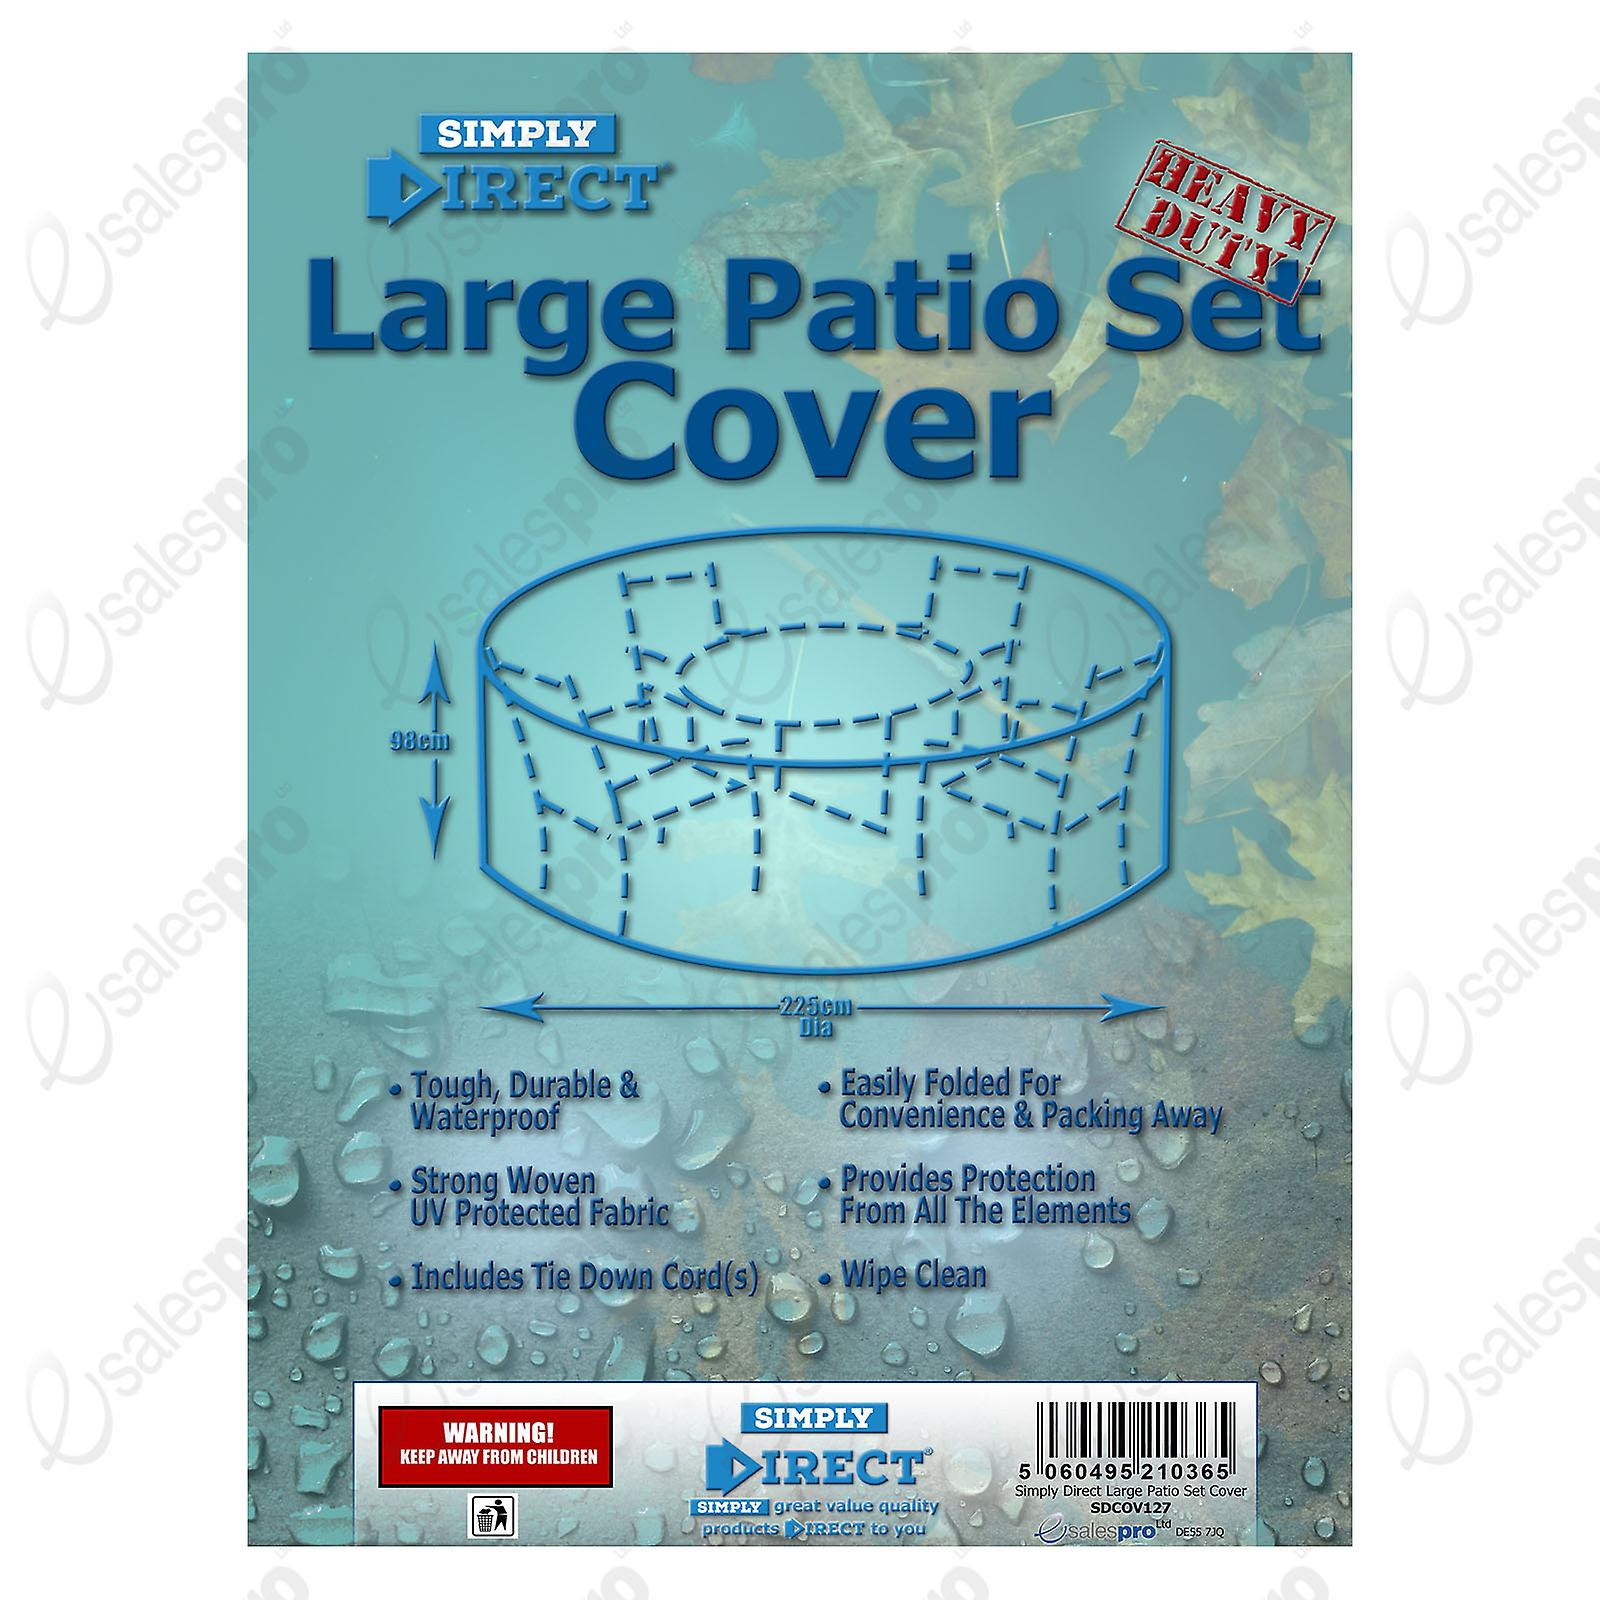 Set CoverLarge Waterproof Patio Round Simply Furniture Protector Direct Weatherproof Kc3l1JFT